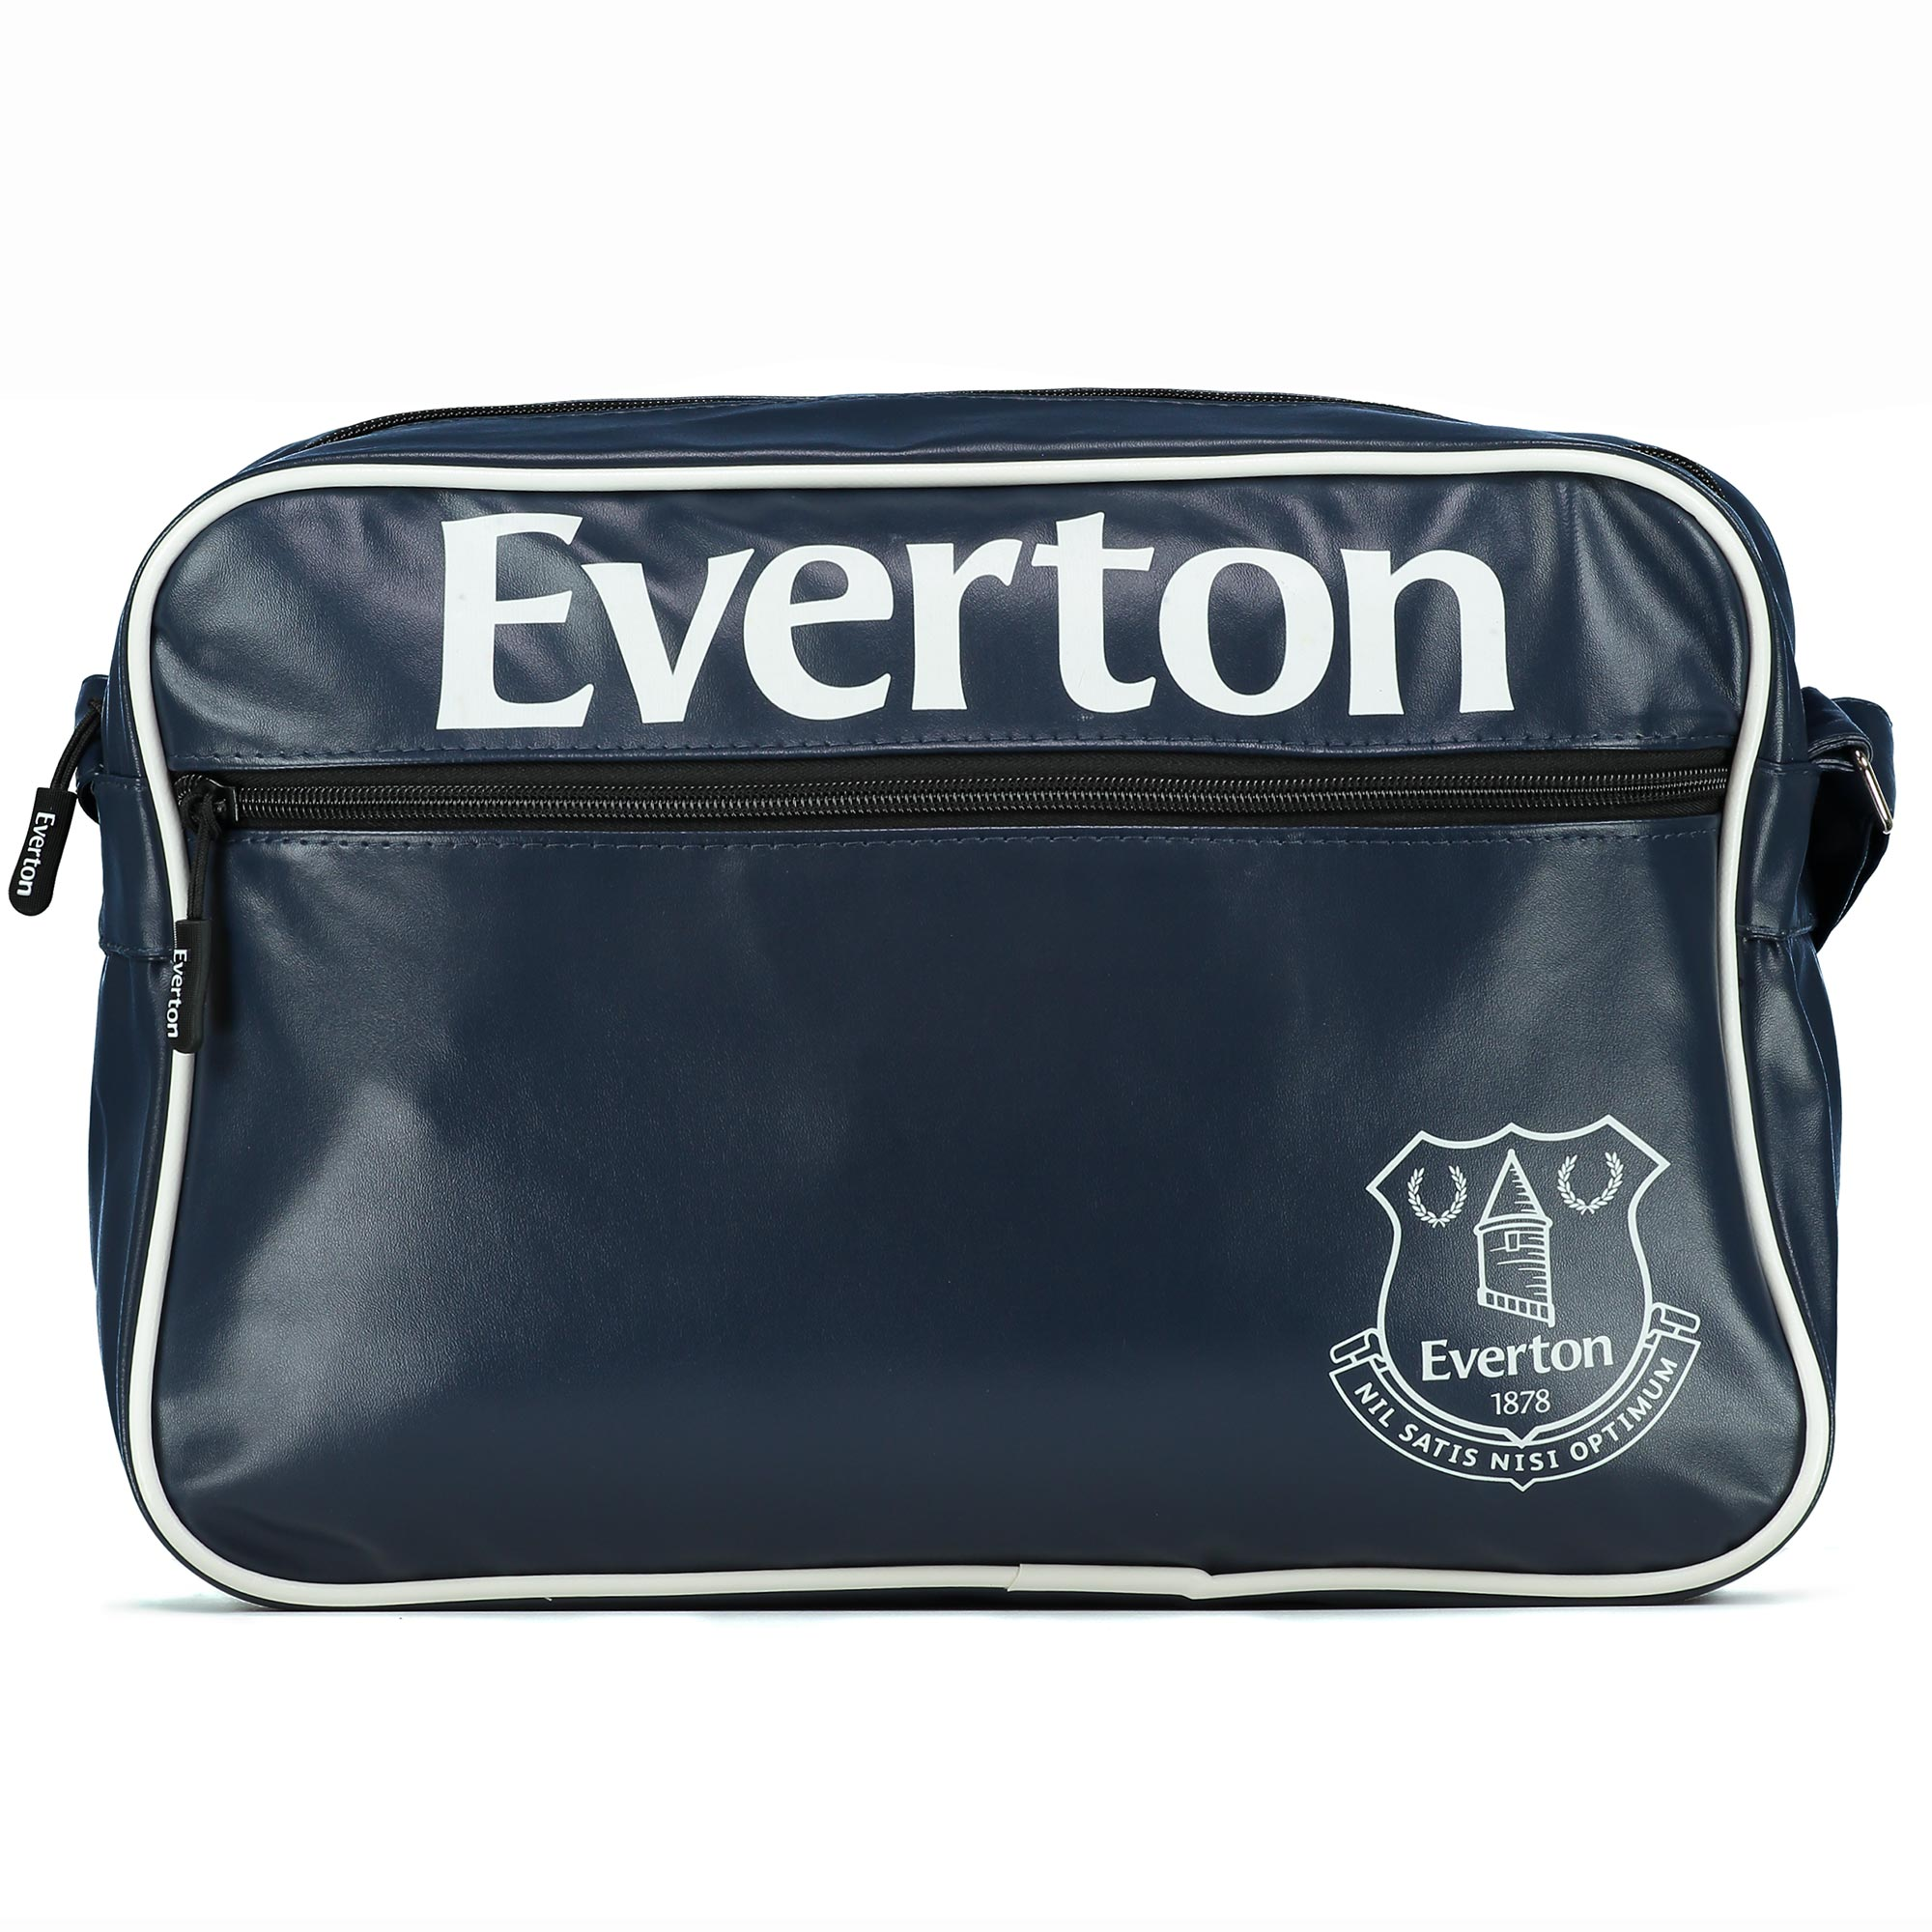 Everton Messenger Bag